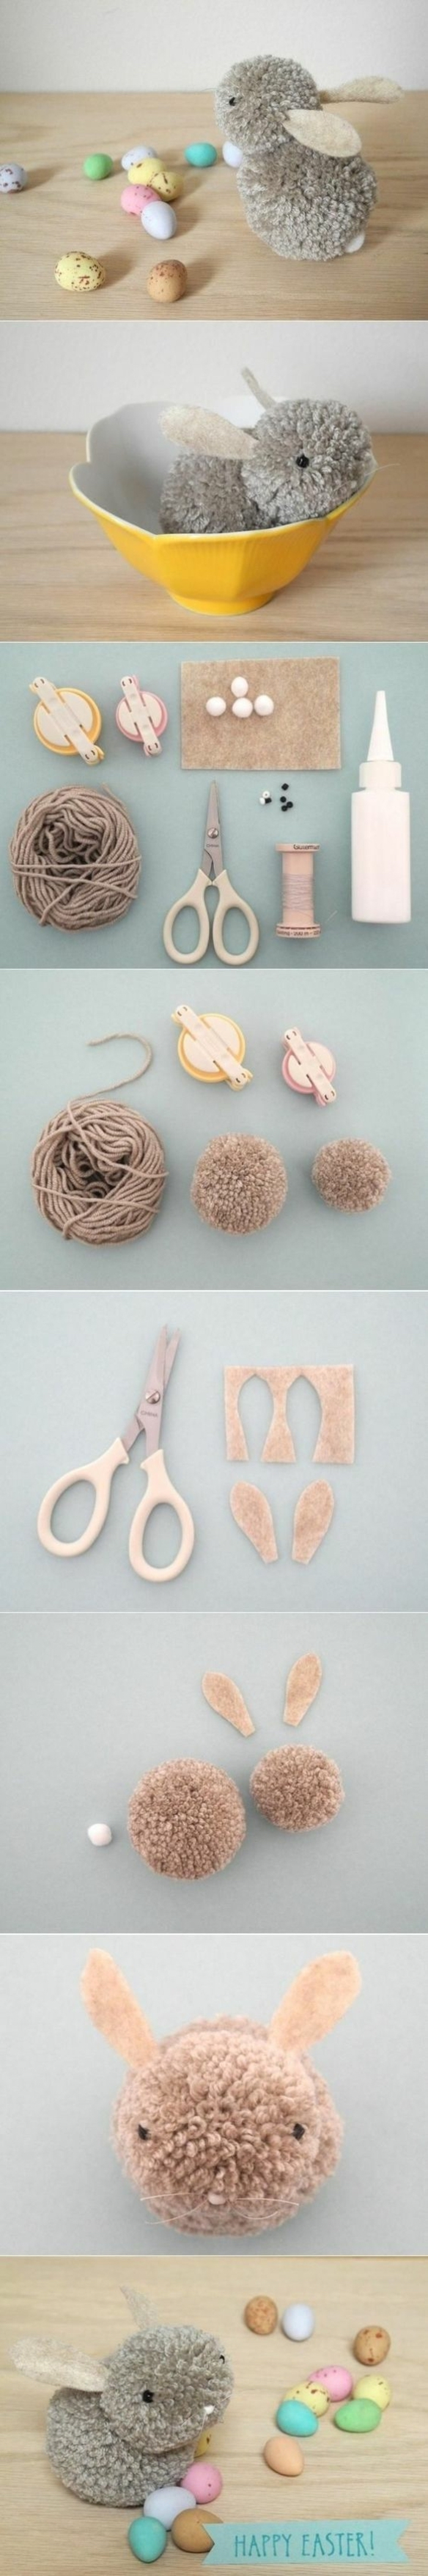 easter decoration, small bunny, made of grey yarn, cool diy projects, step by step tutorial